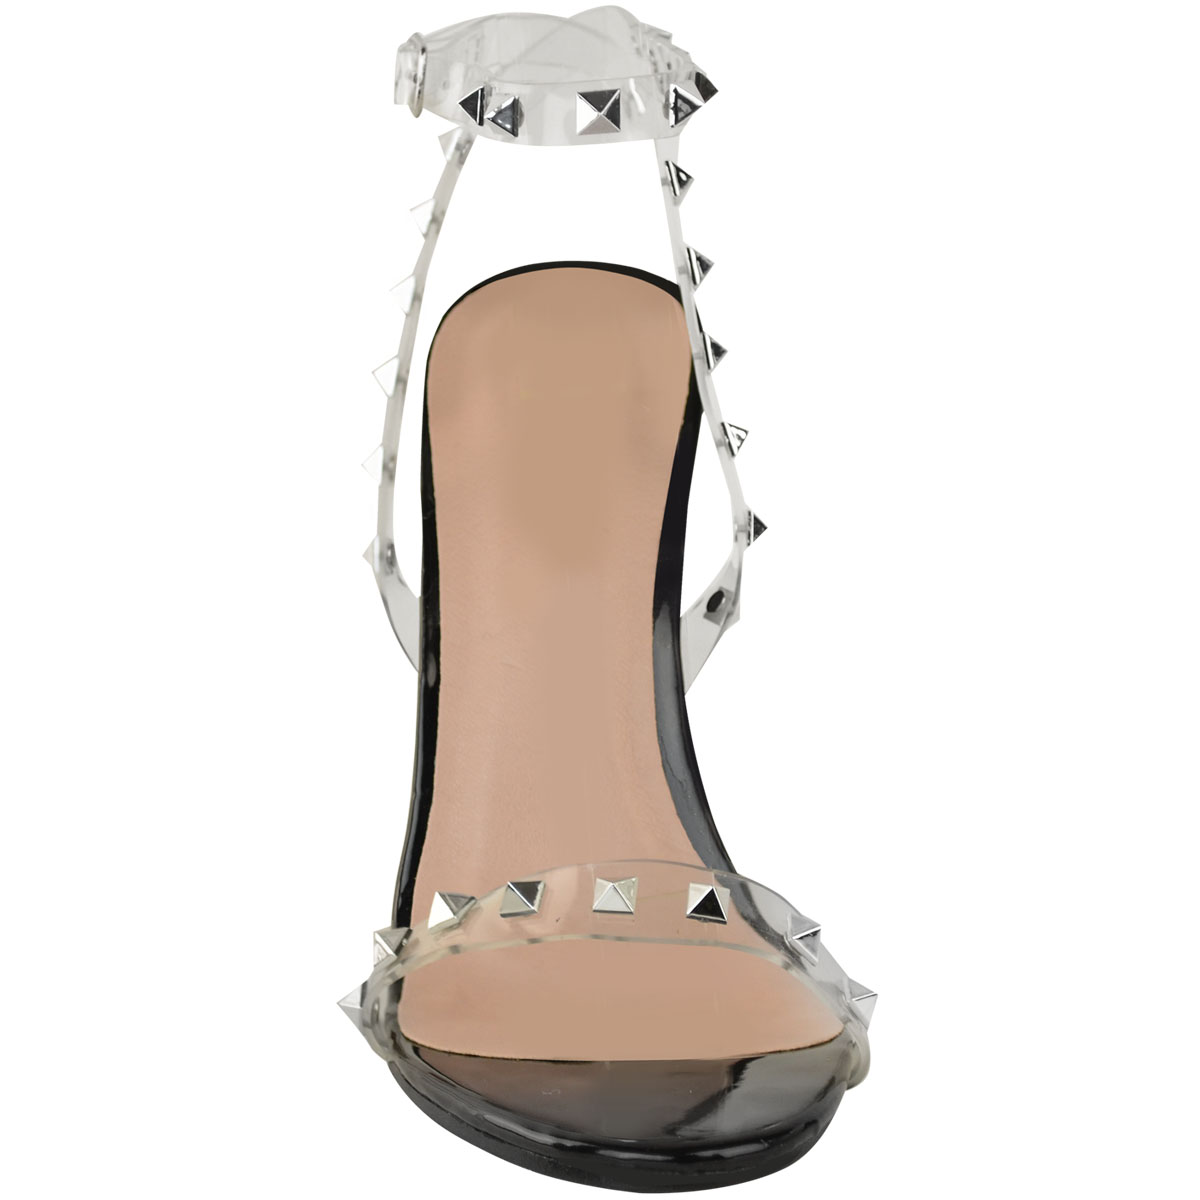 New-High-Heel-Party-Sandals-Womens-Ladies-Rock-Prom-Perspex-Stud-Stilleto-Size